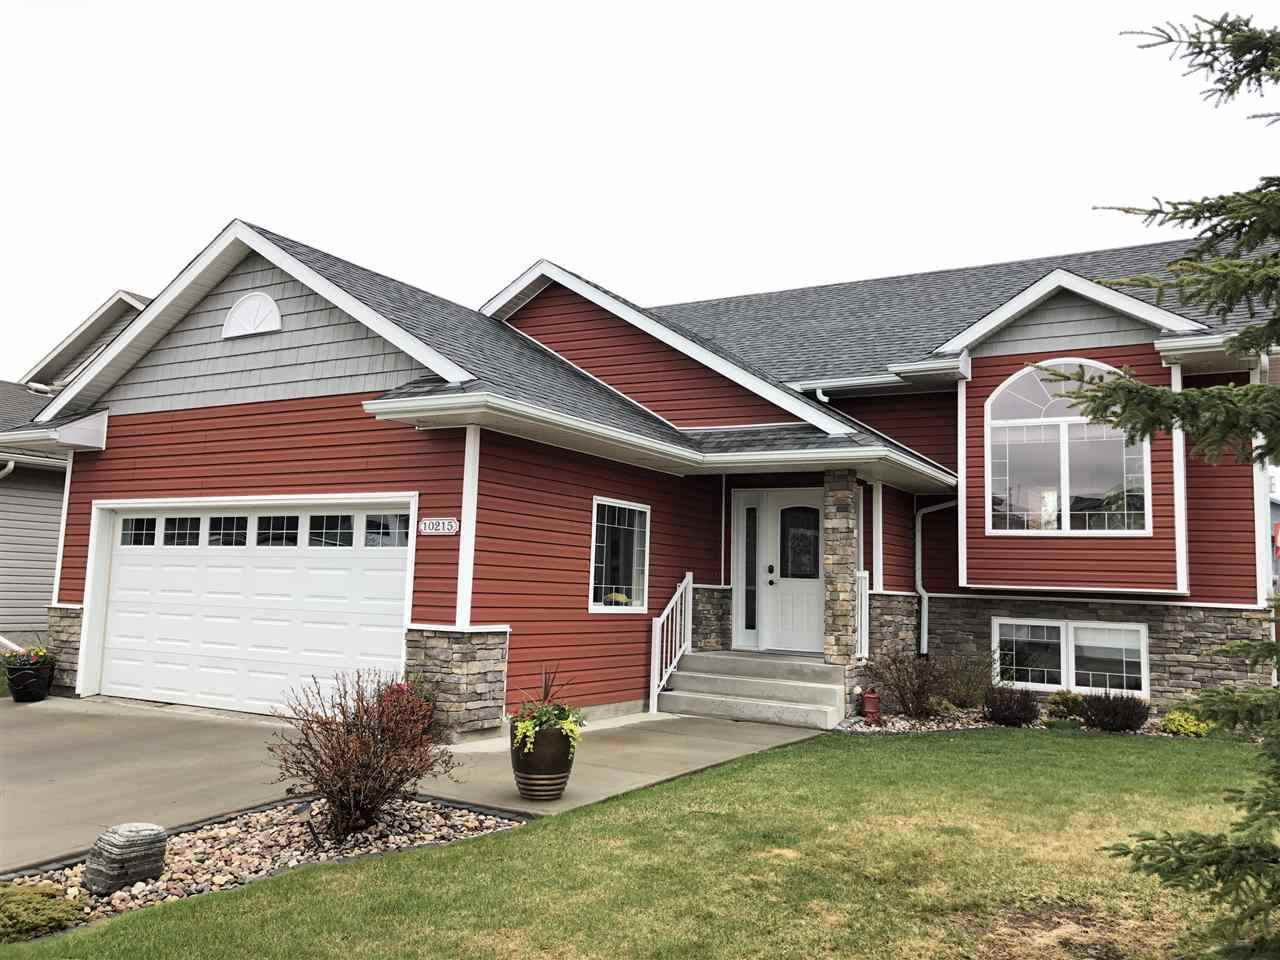 Main Photo: 10215 110 Avenue: Westlock House for sale : MLS®# E4184028